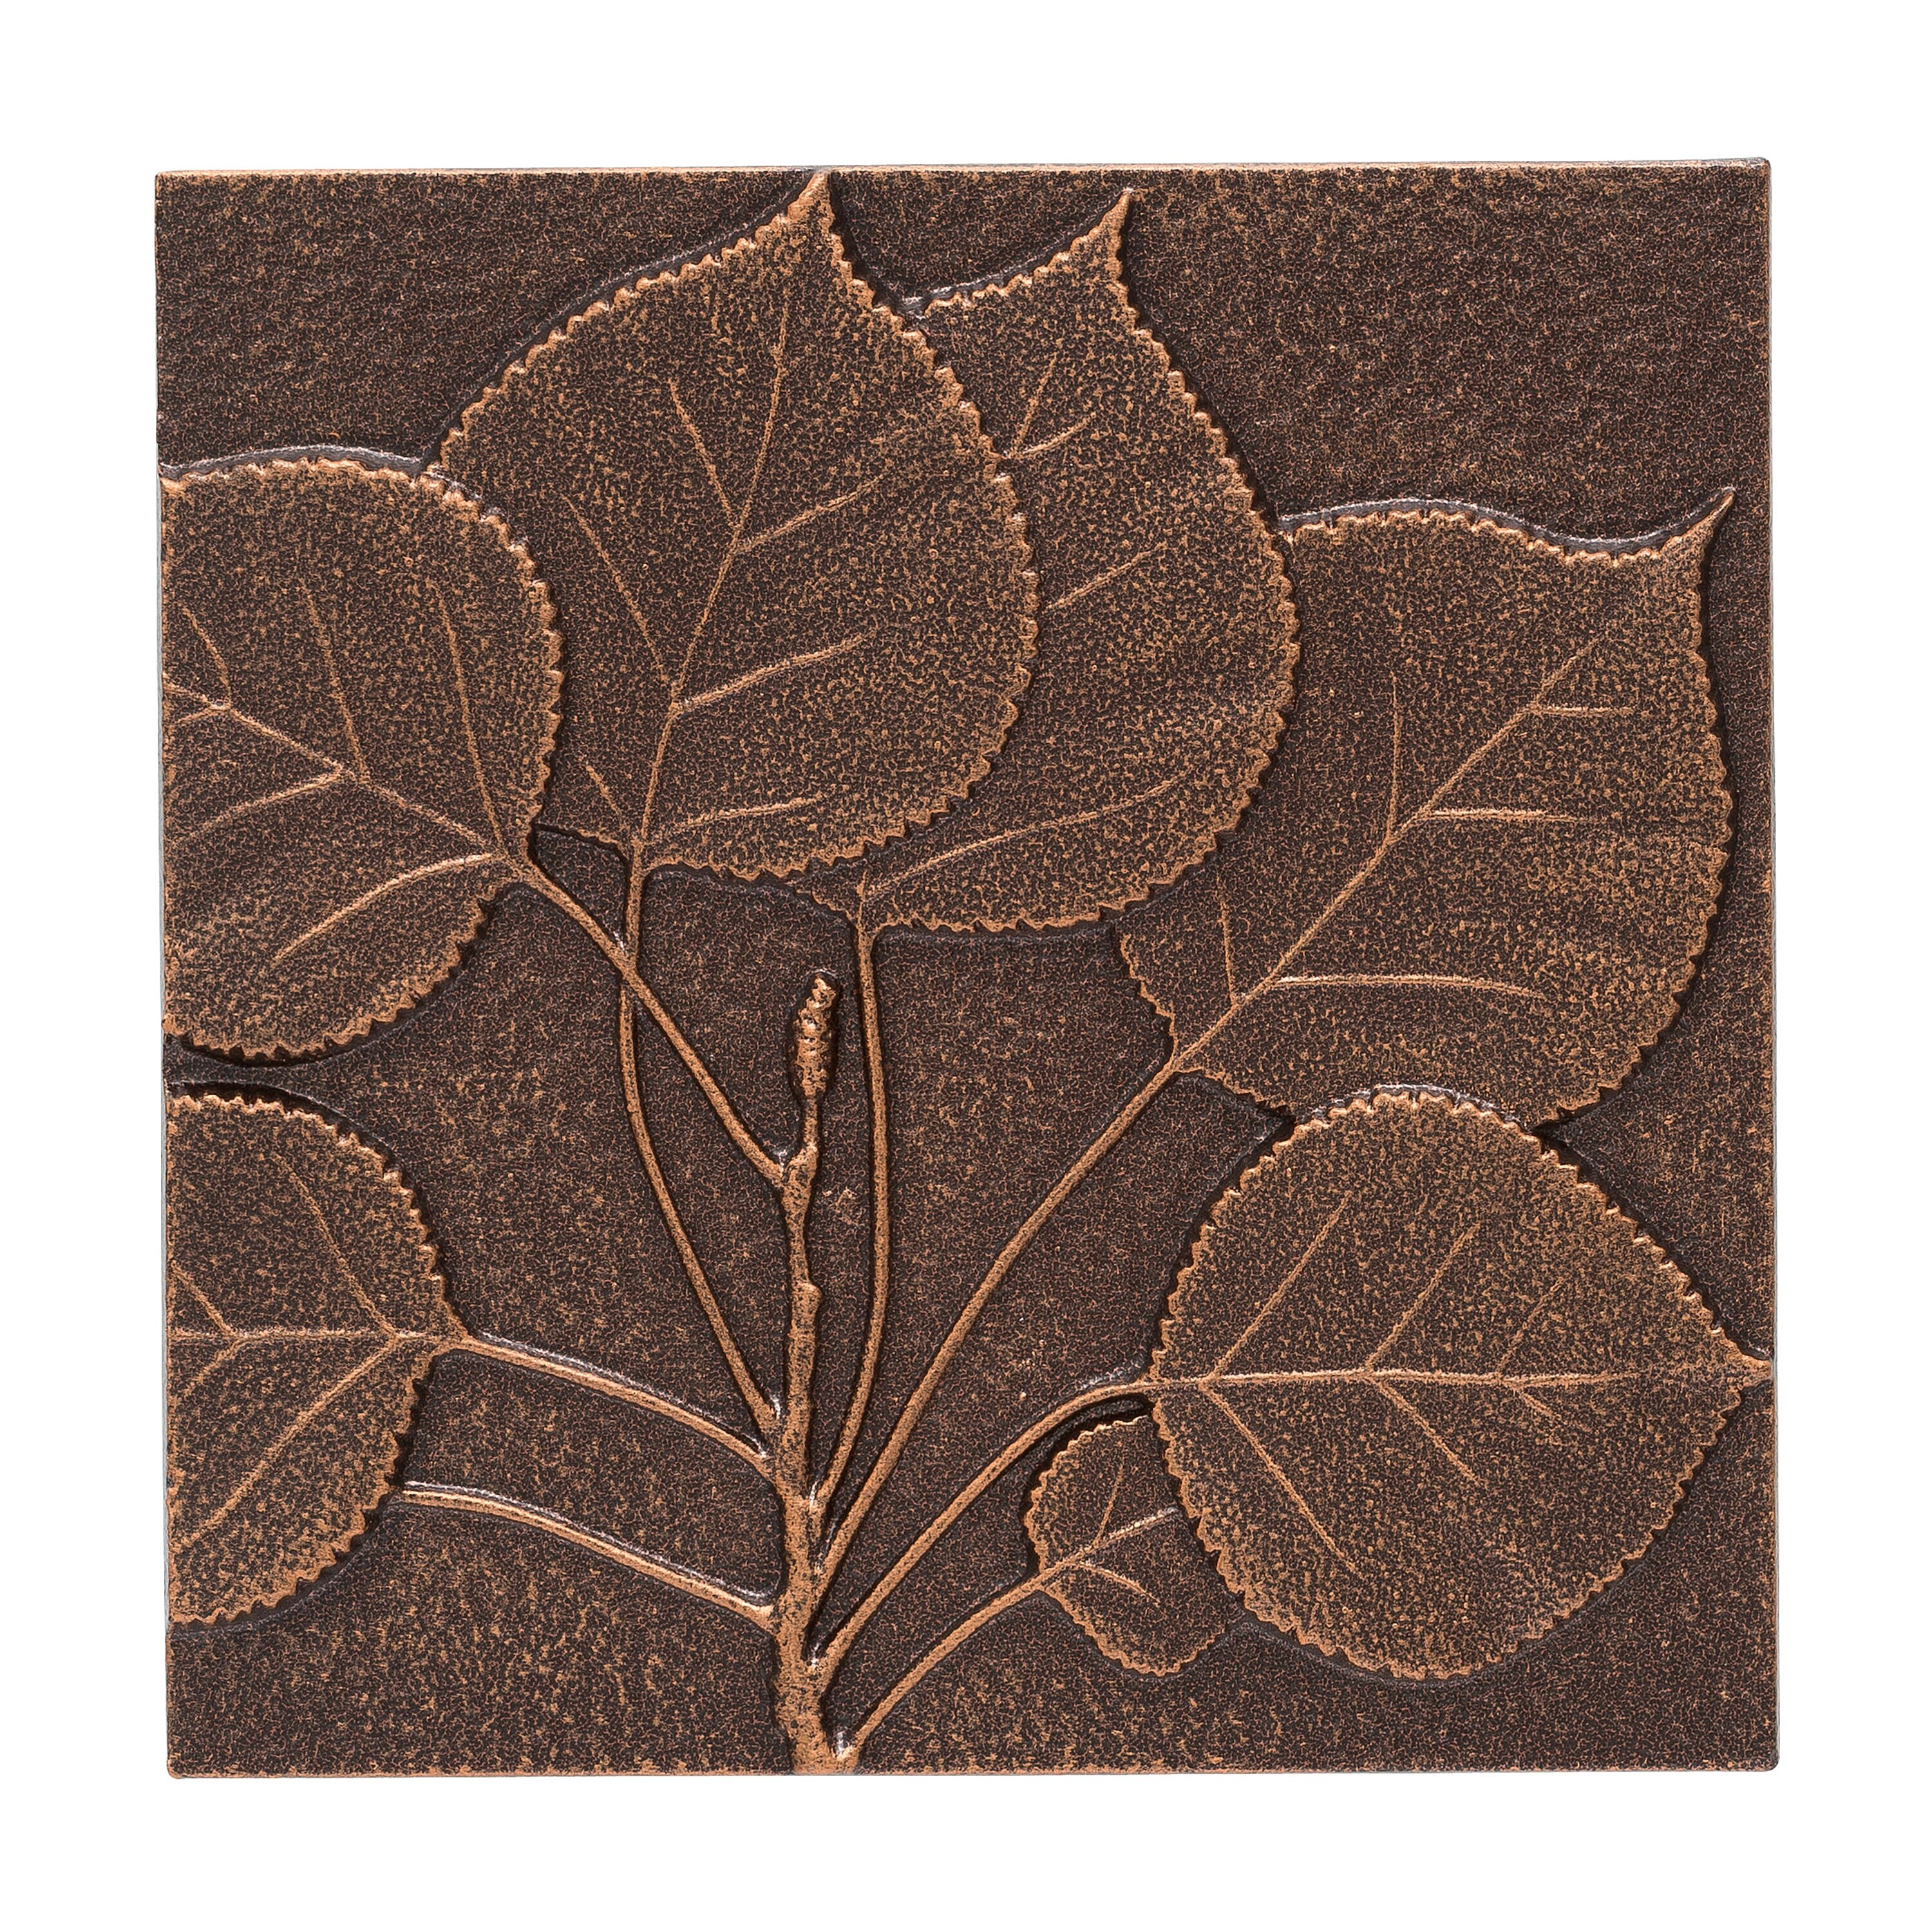 Whitehall Products Aspen Leaf Wall Decor